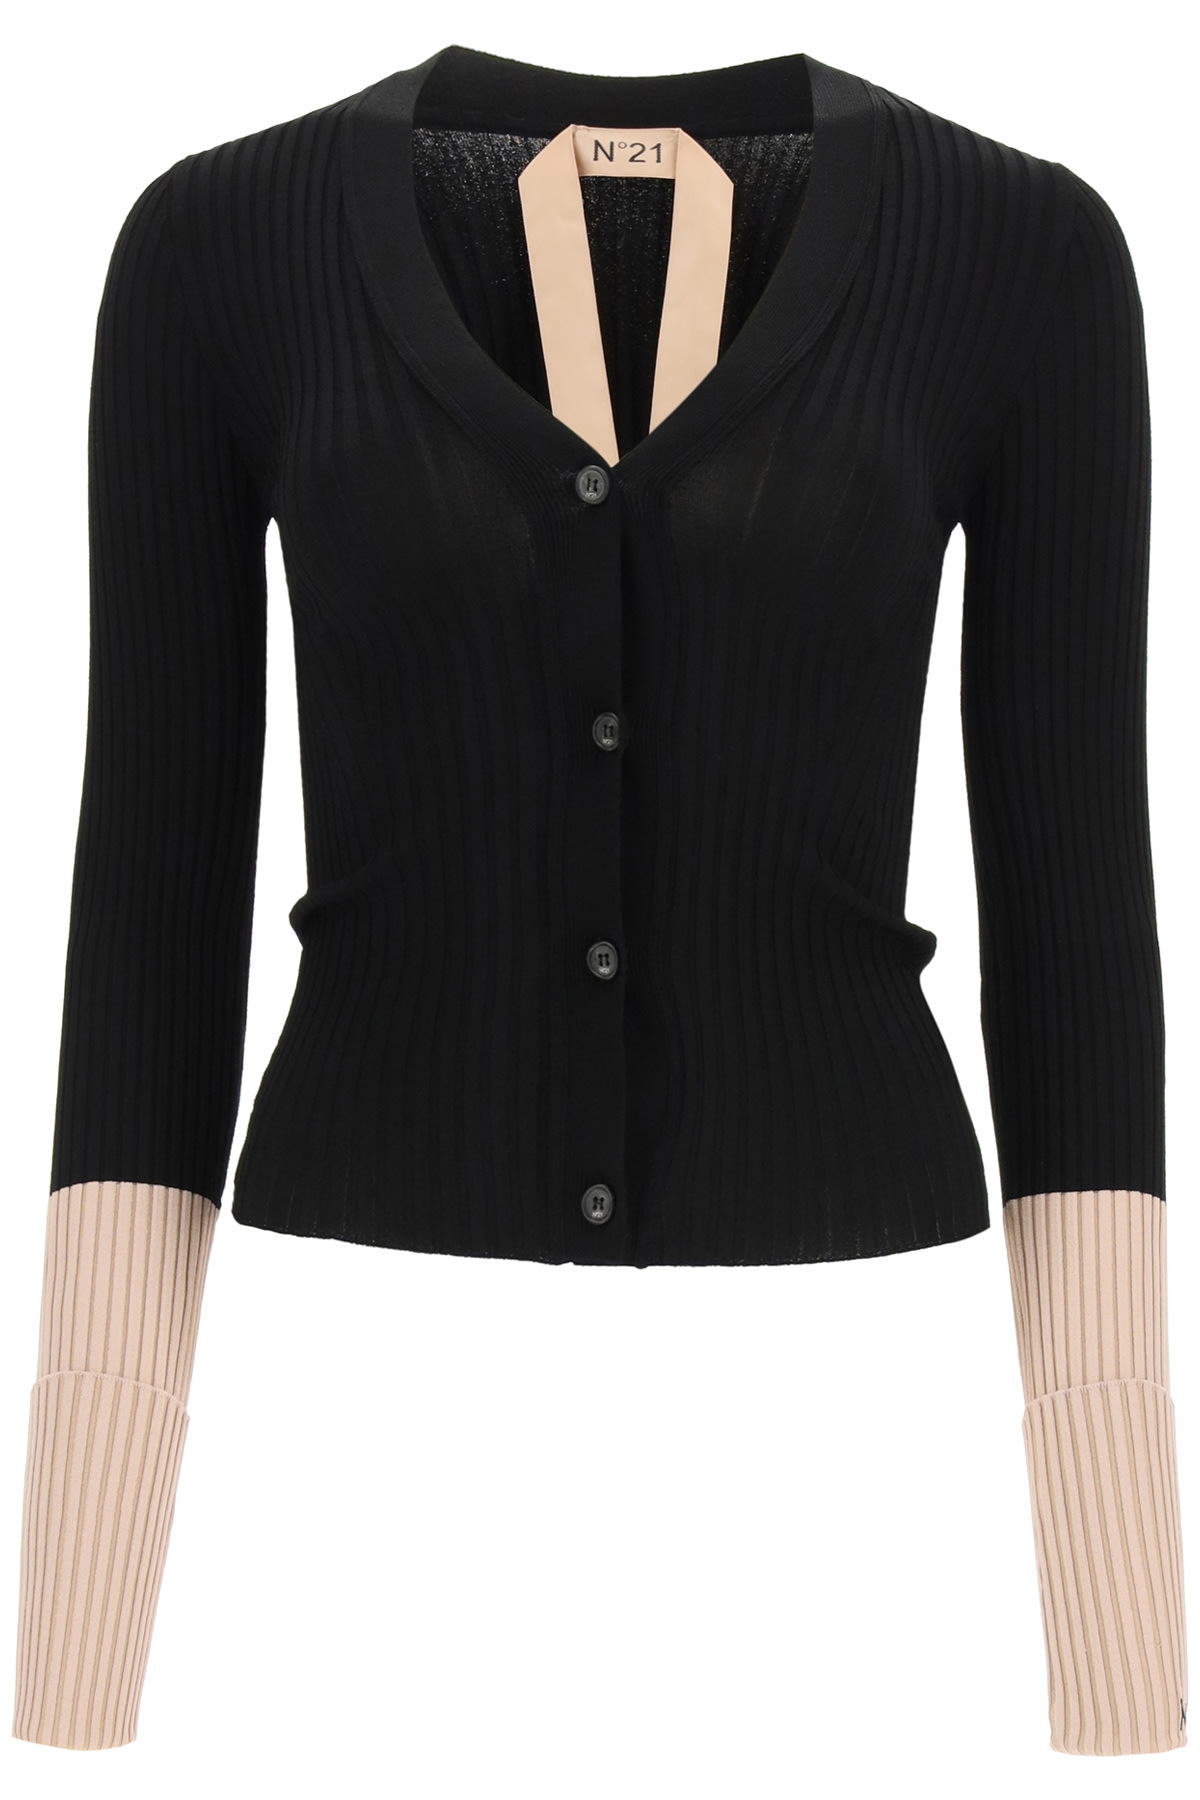 N°21 Clothing TWO-TONE CARDIGAN WITH LOGO